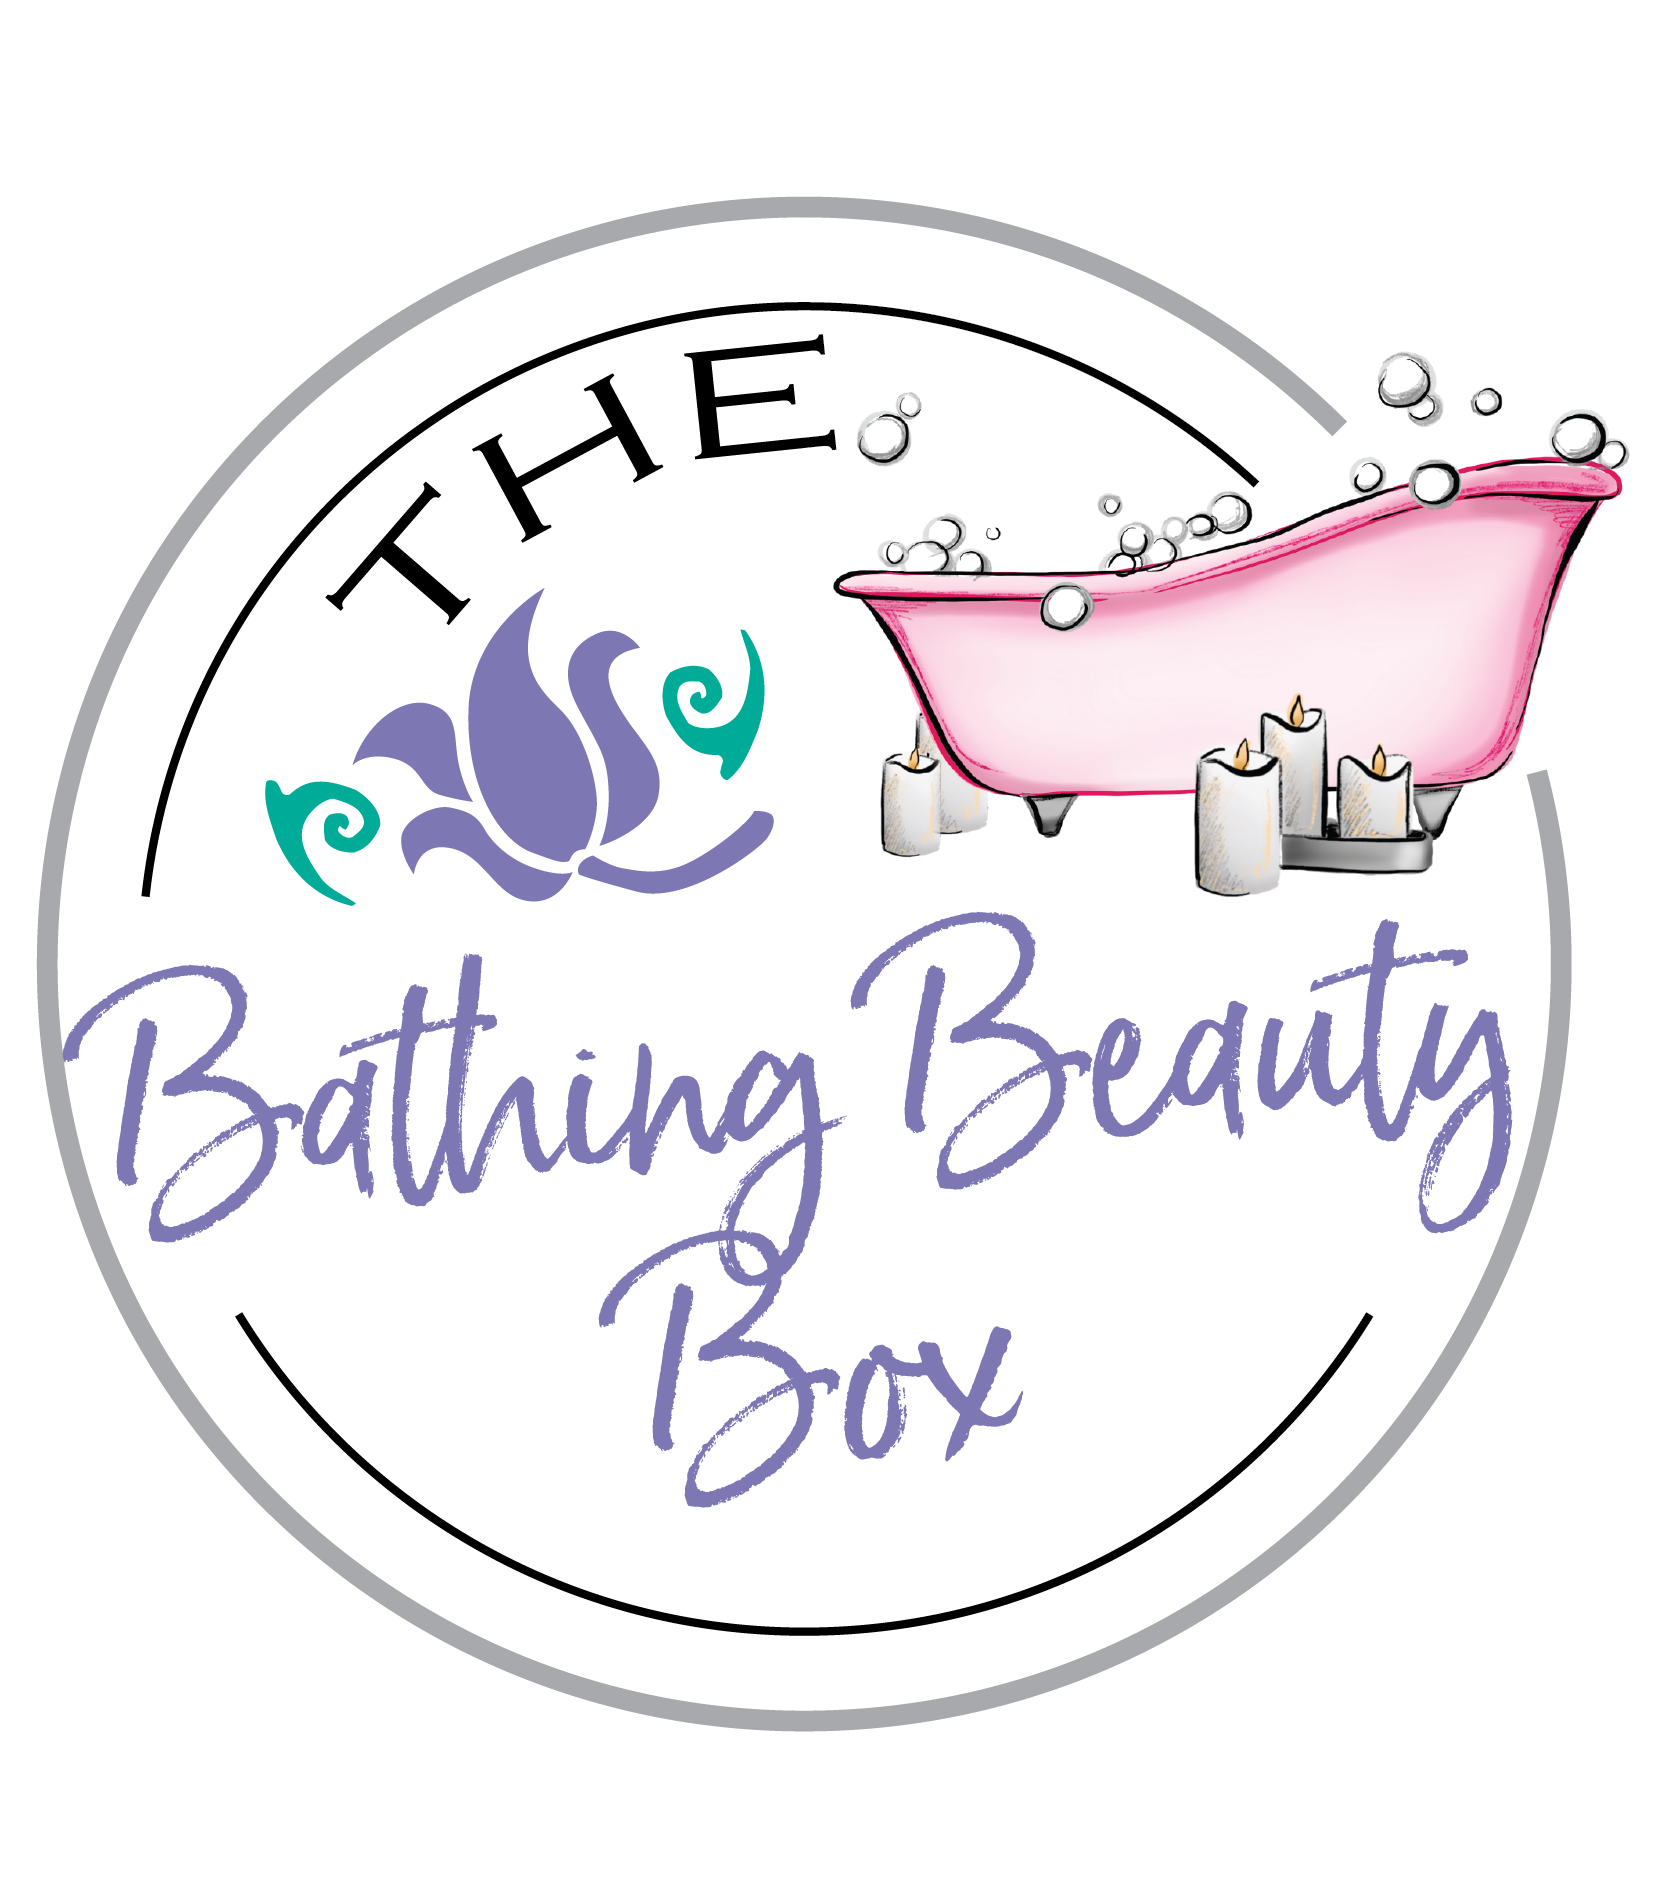 The Bathing Beauty Box